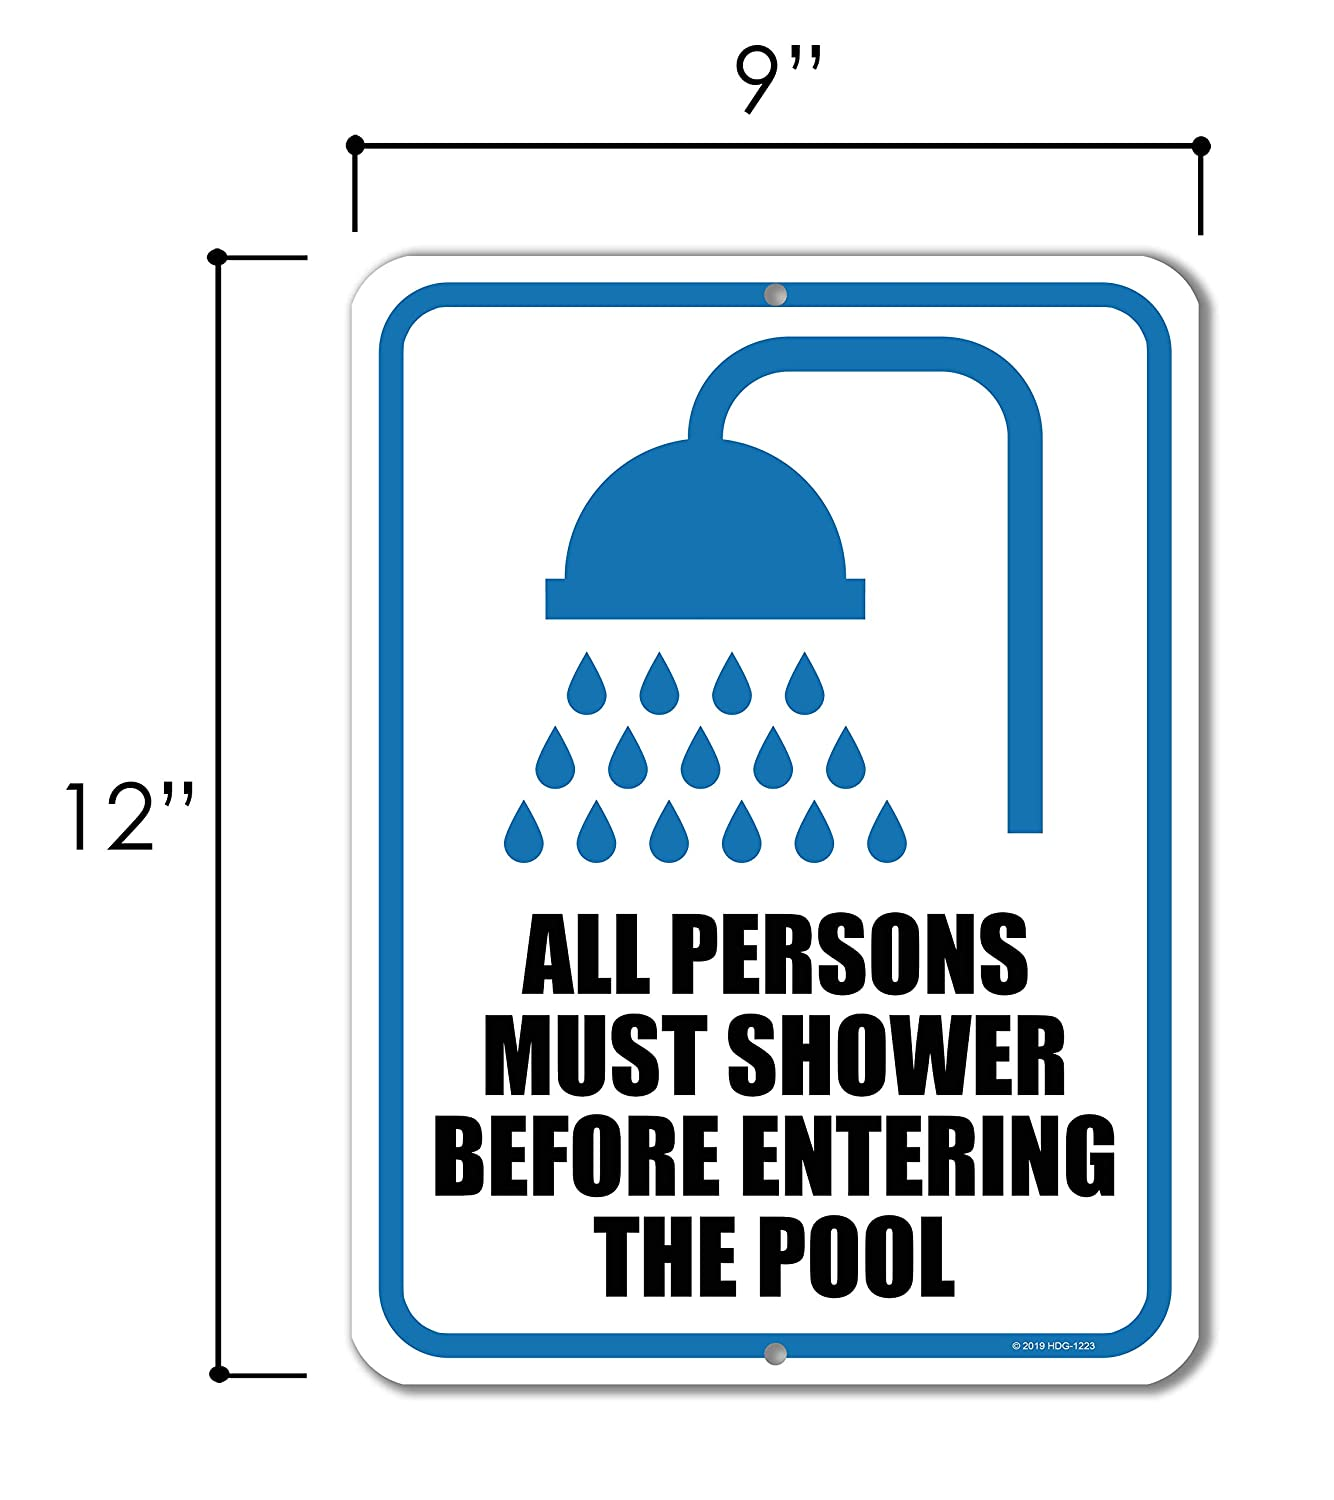 Honey Dew Gifts Pool Rules Sign Made in USA All Persons Must Shower Before Entering The Pool 9 inch by 12 inch Metal Pool Signs and Decor Outdoor